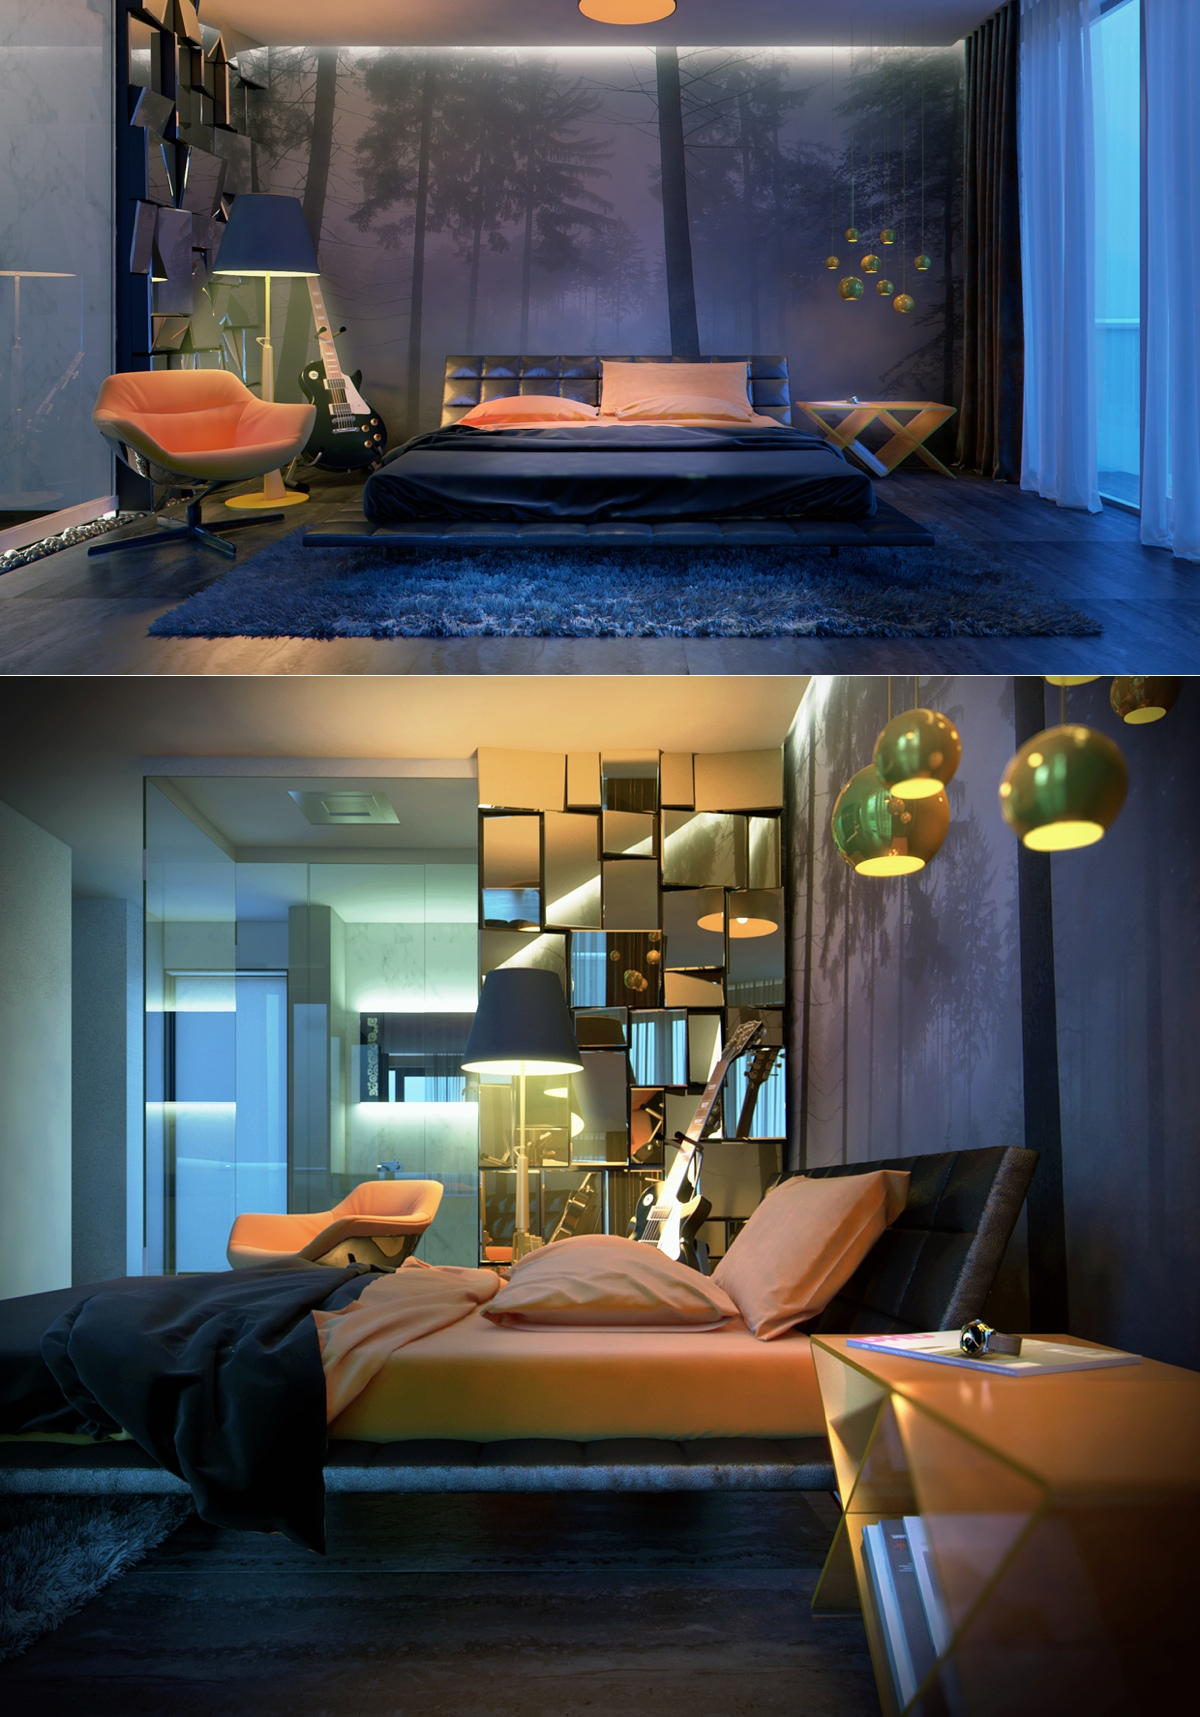 Bedroom Ideas Quirky sleek bedrooms with cool, clean lines